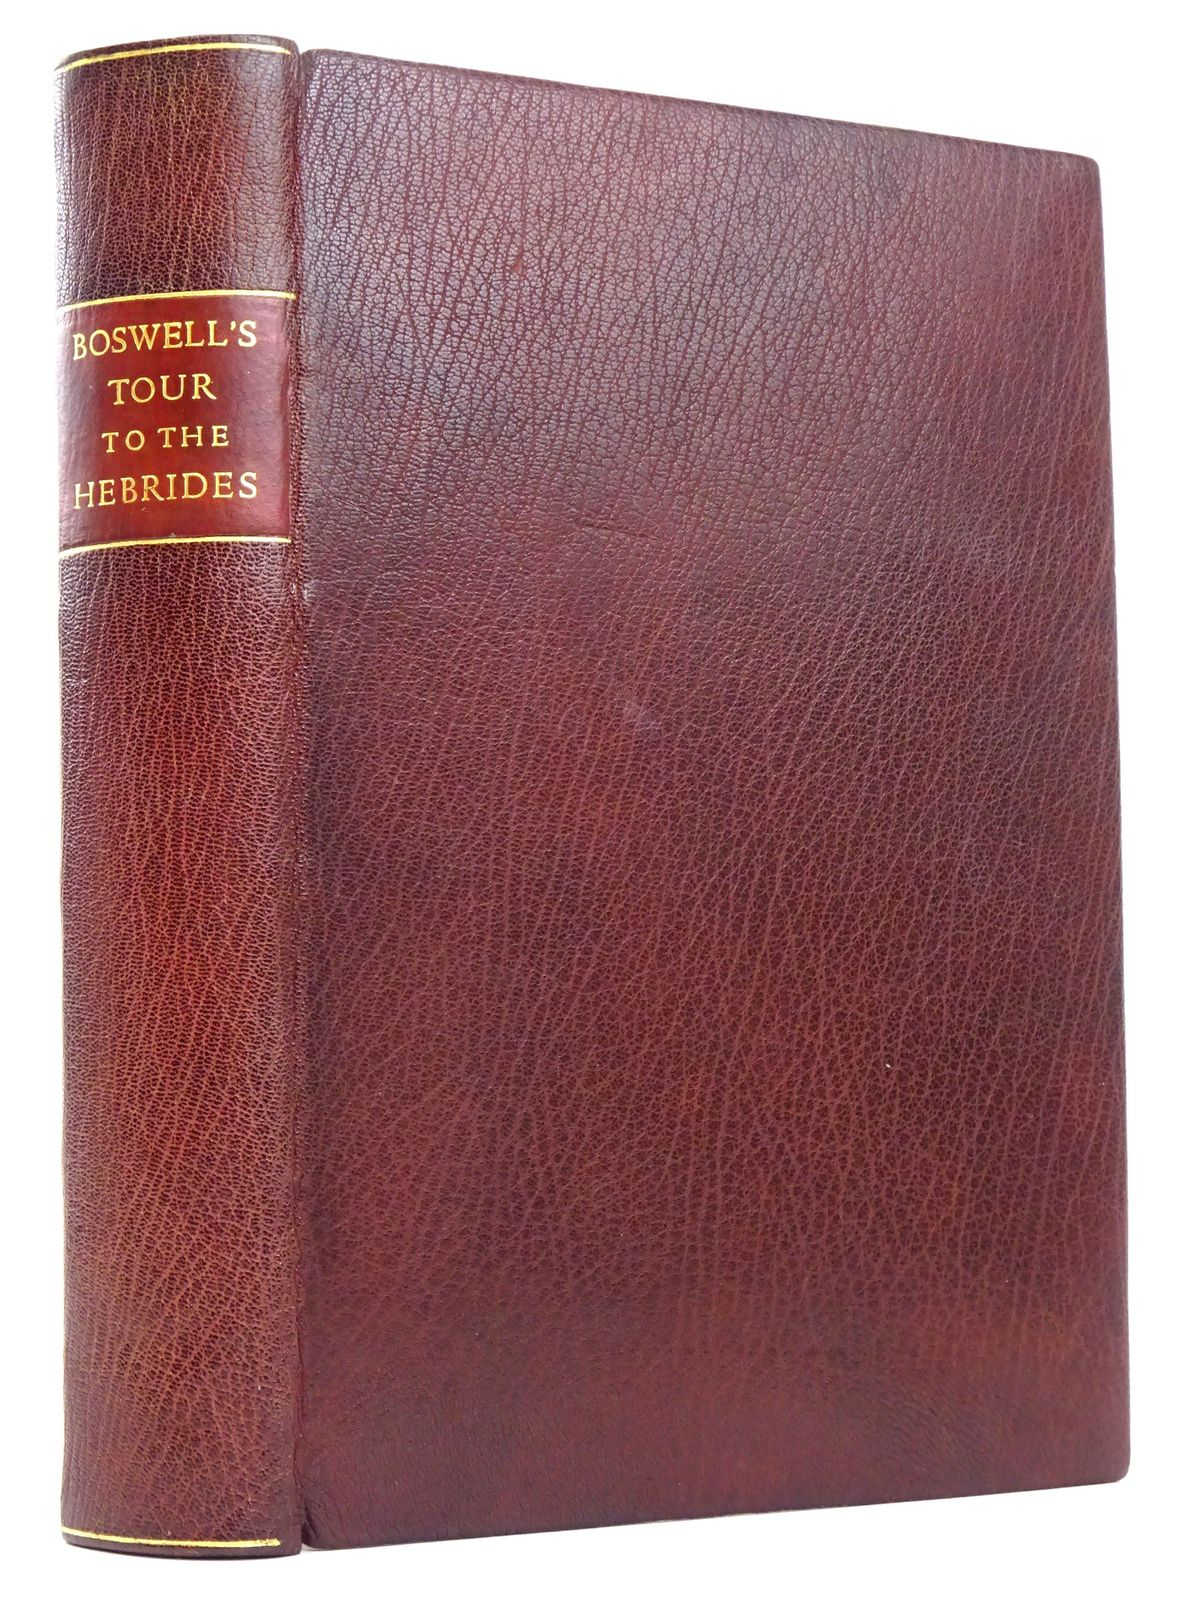 Photo of BOSWELL'S JOURNAL OF A TOUR TO THE HEBRIDES WITH SAMUEL JOHNSON- Stock Number: 1818354